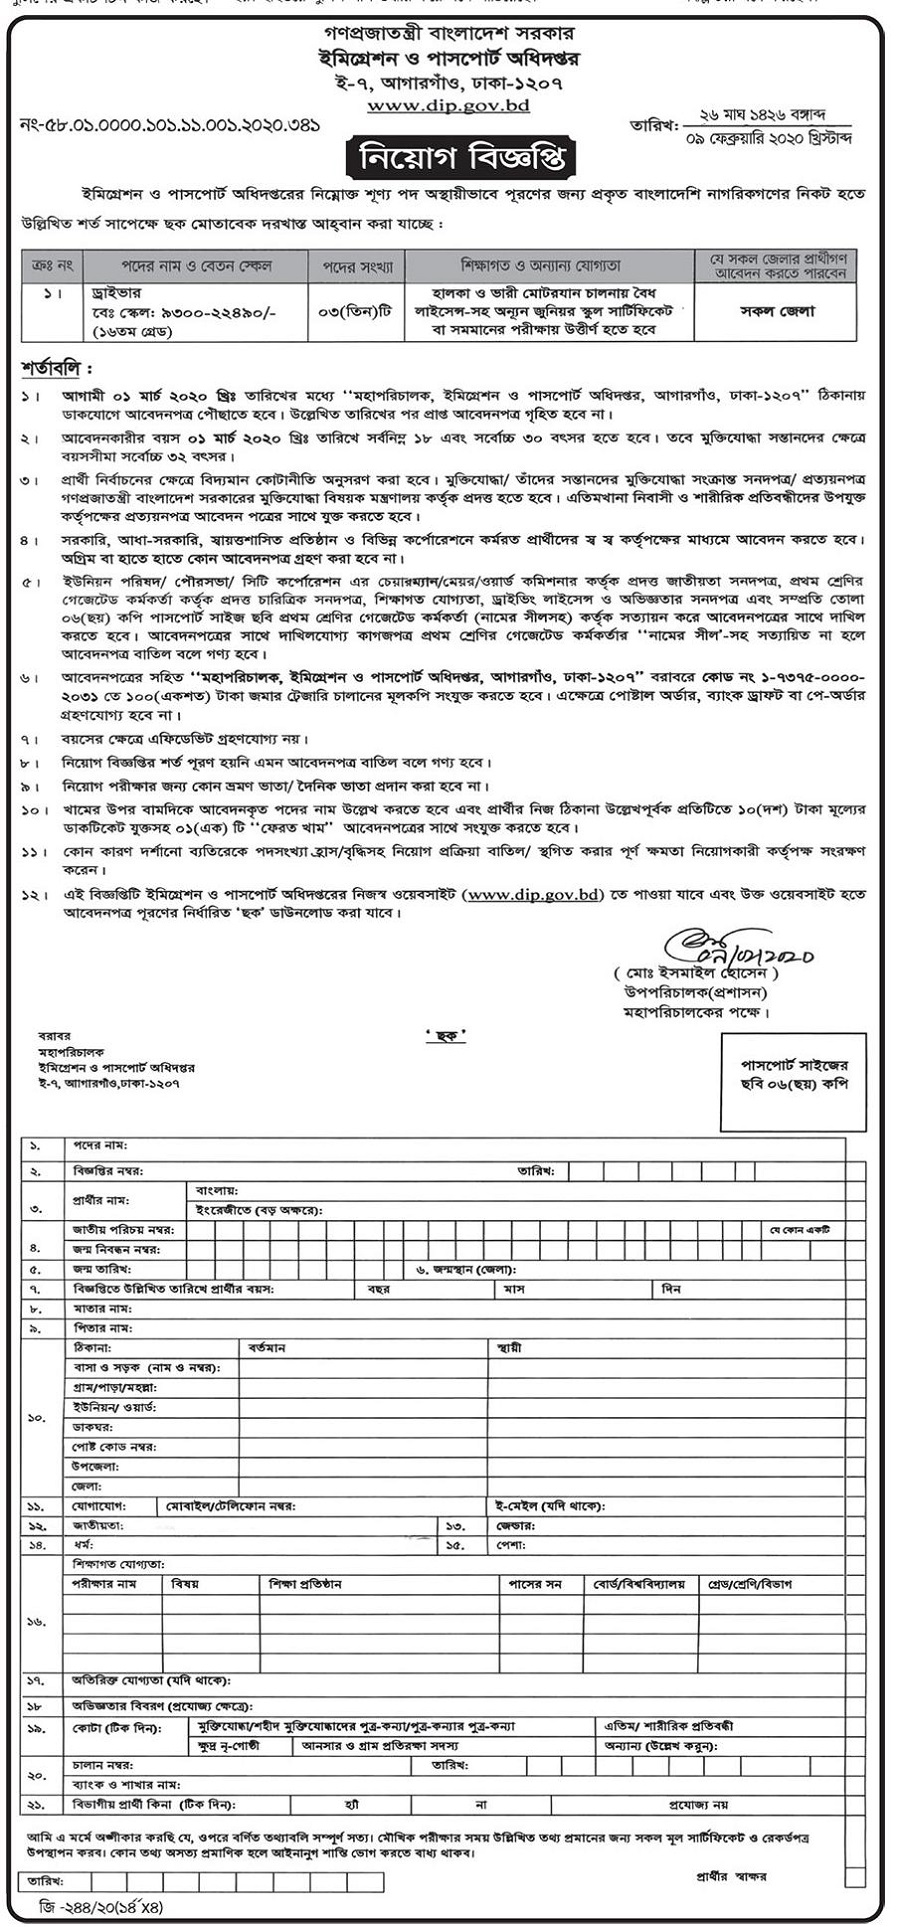 Department of Immigration and Passports Job Circular 2020